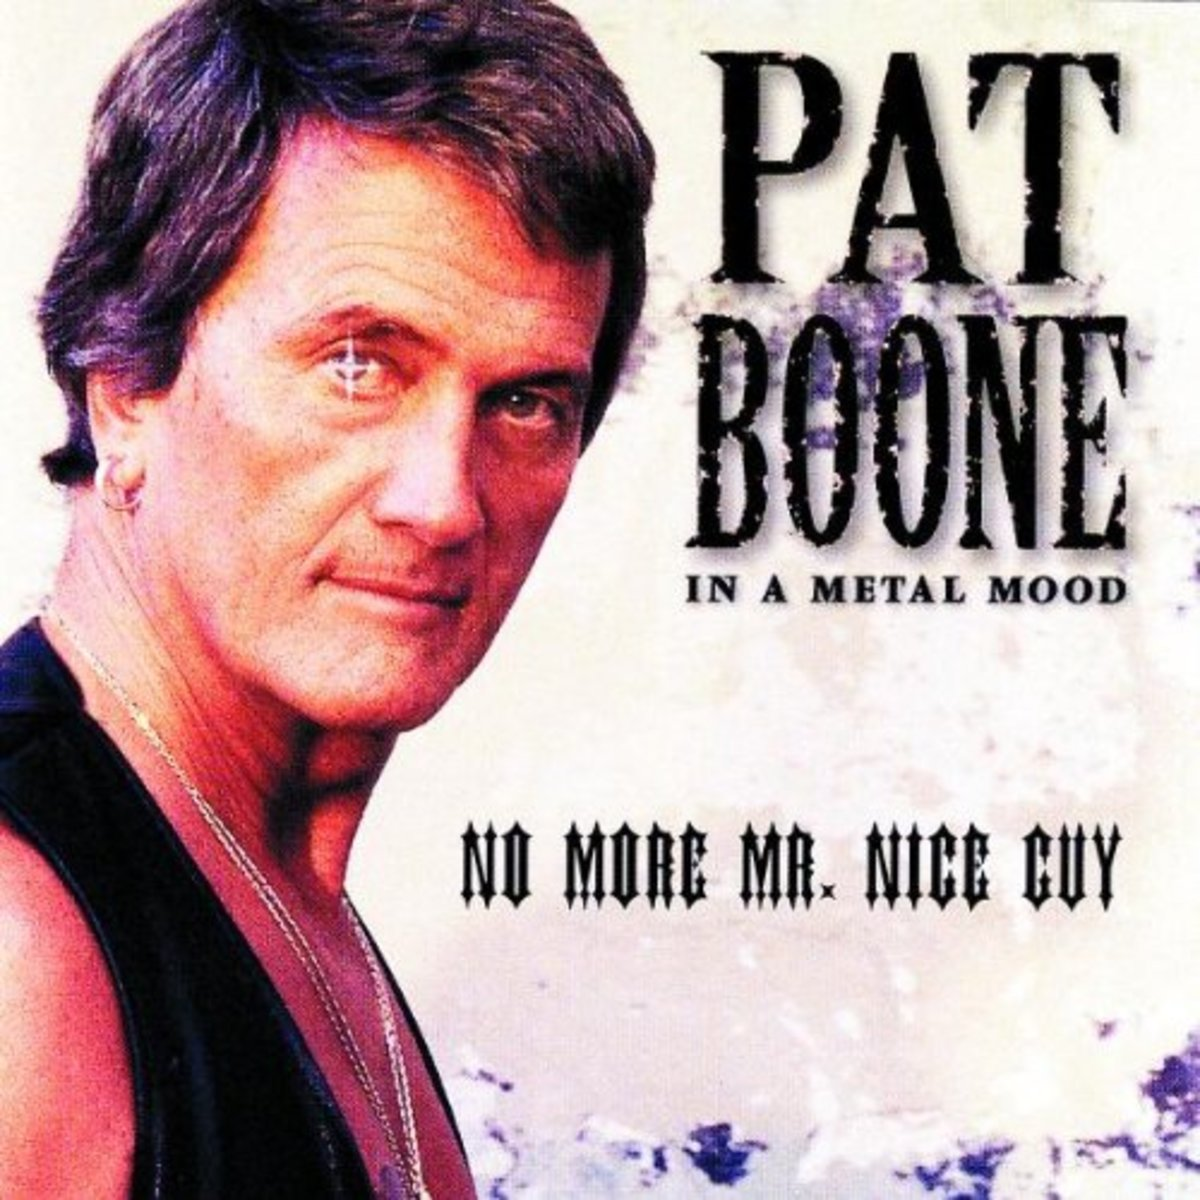 In a Metal Mood: No More Mr. Nice Guy album cover.